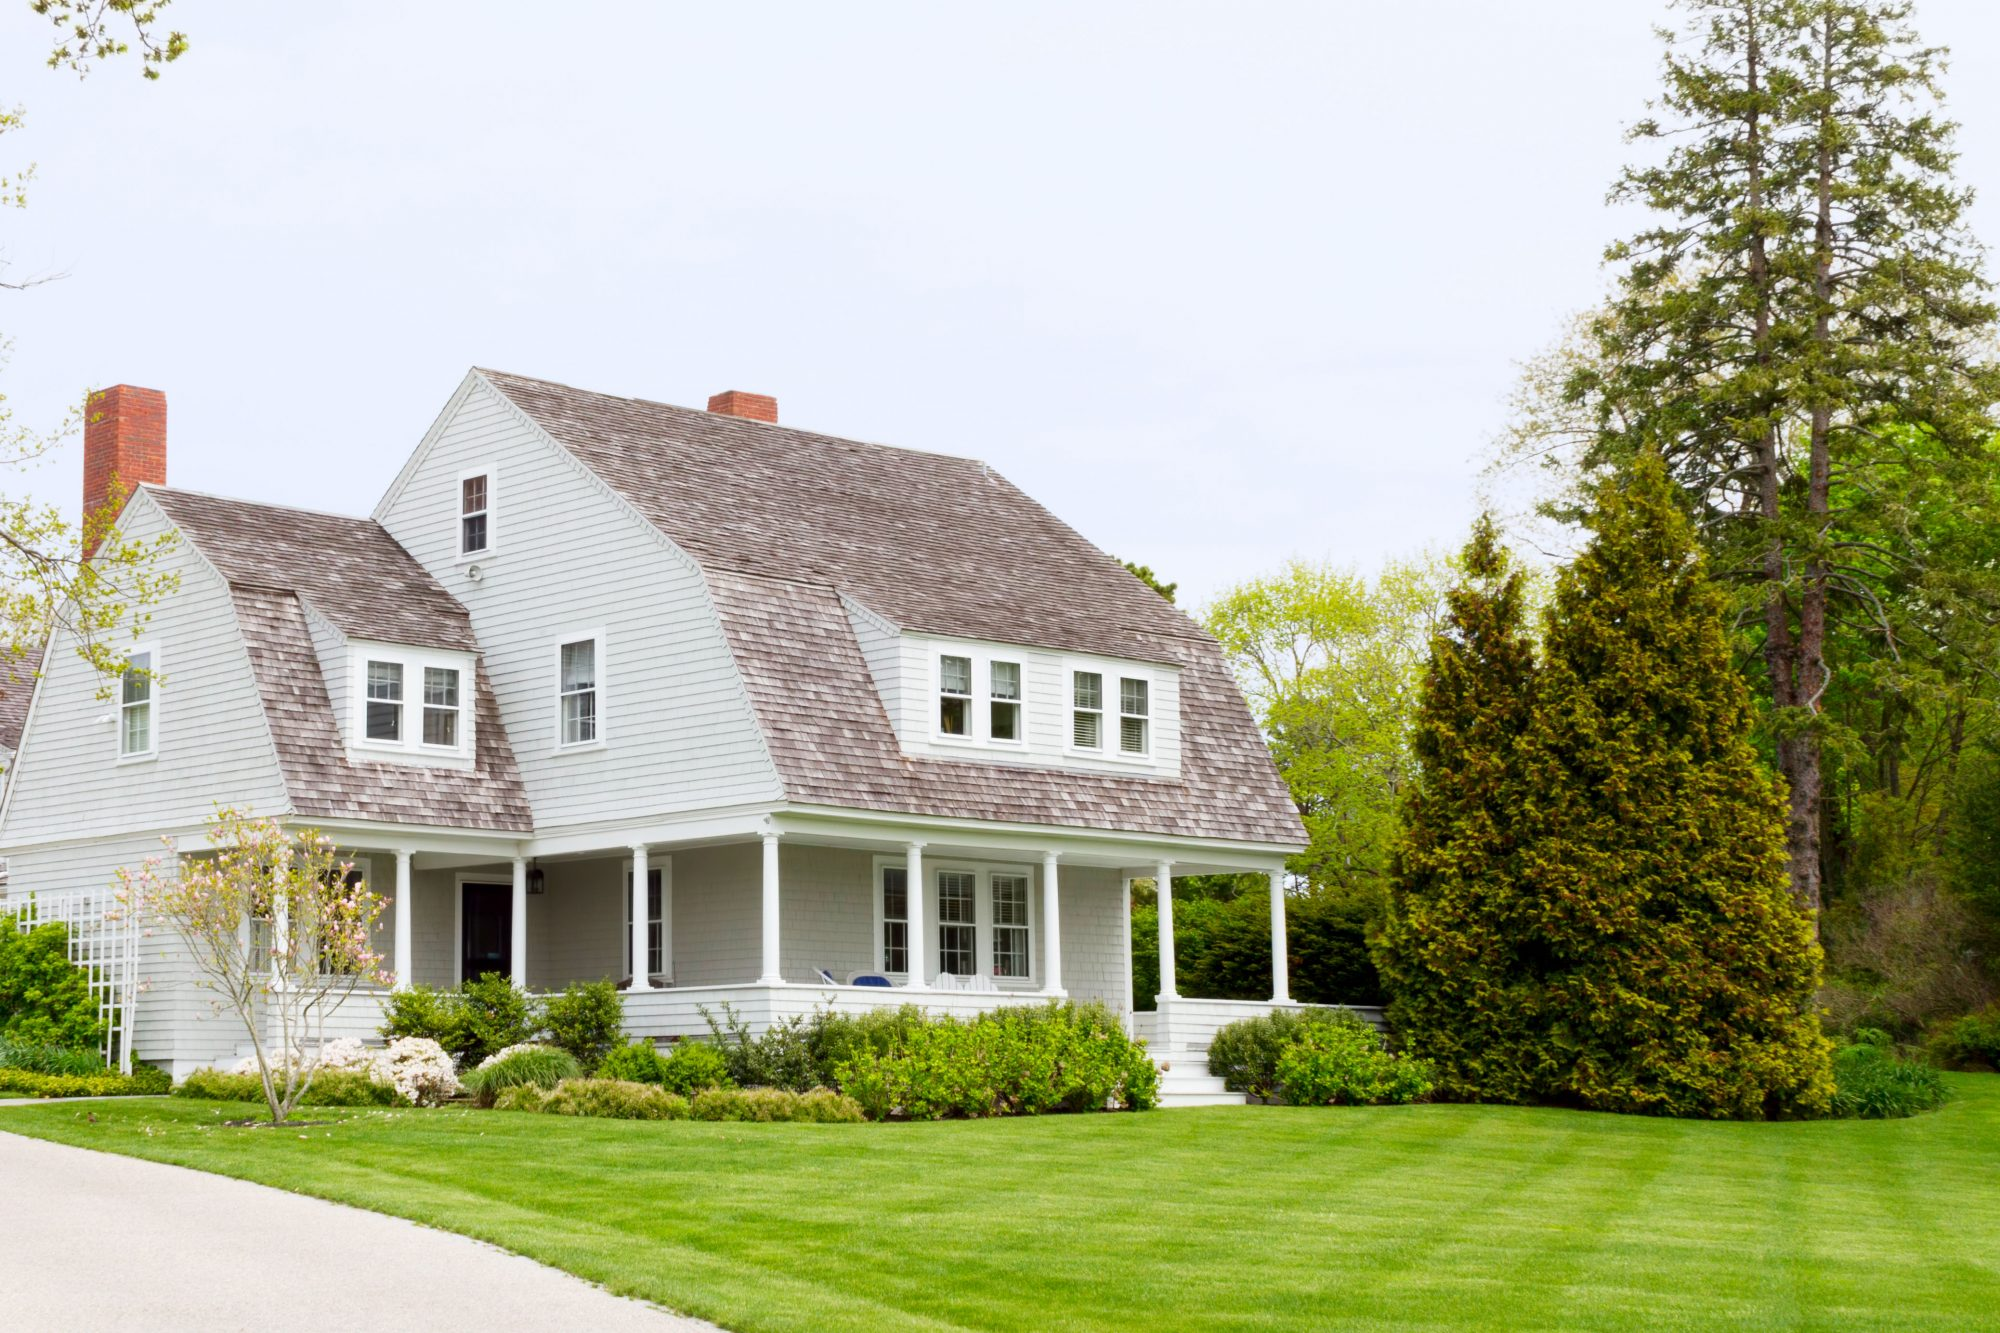 manicured-front-lawn-cottage-home-getty-0421